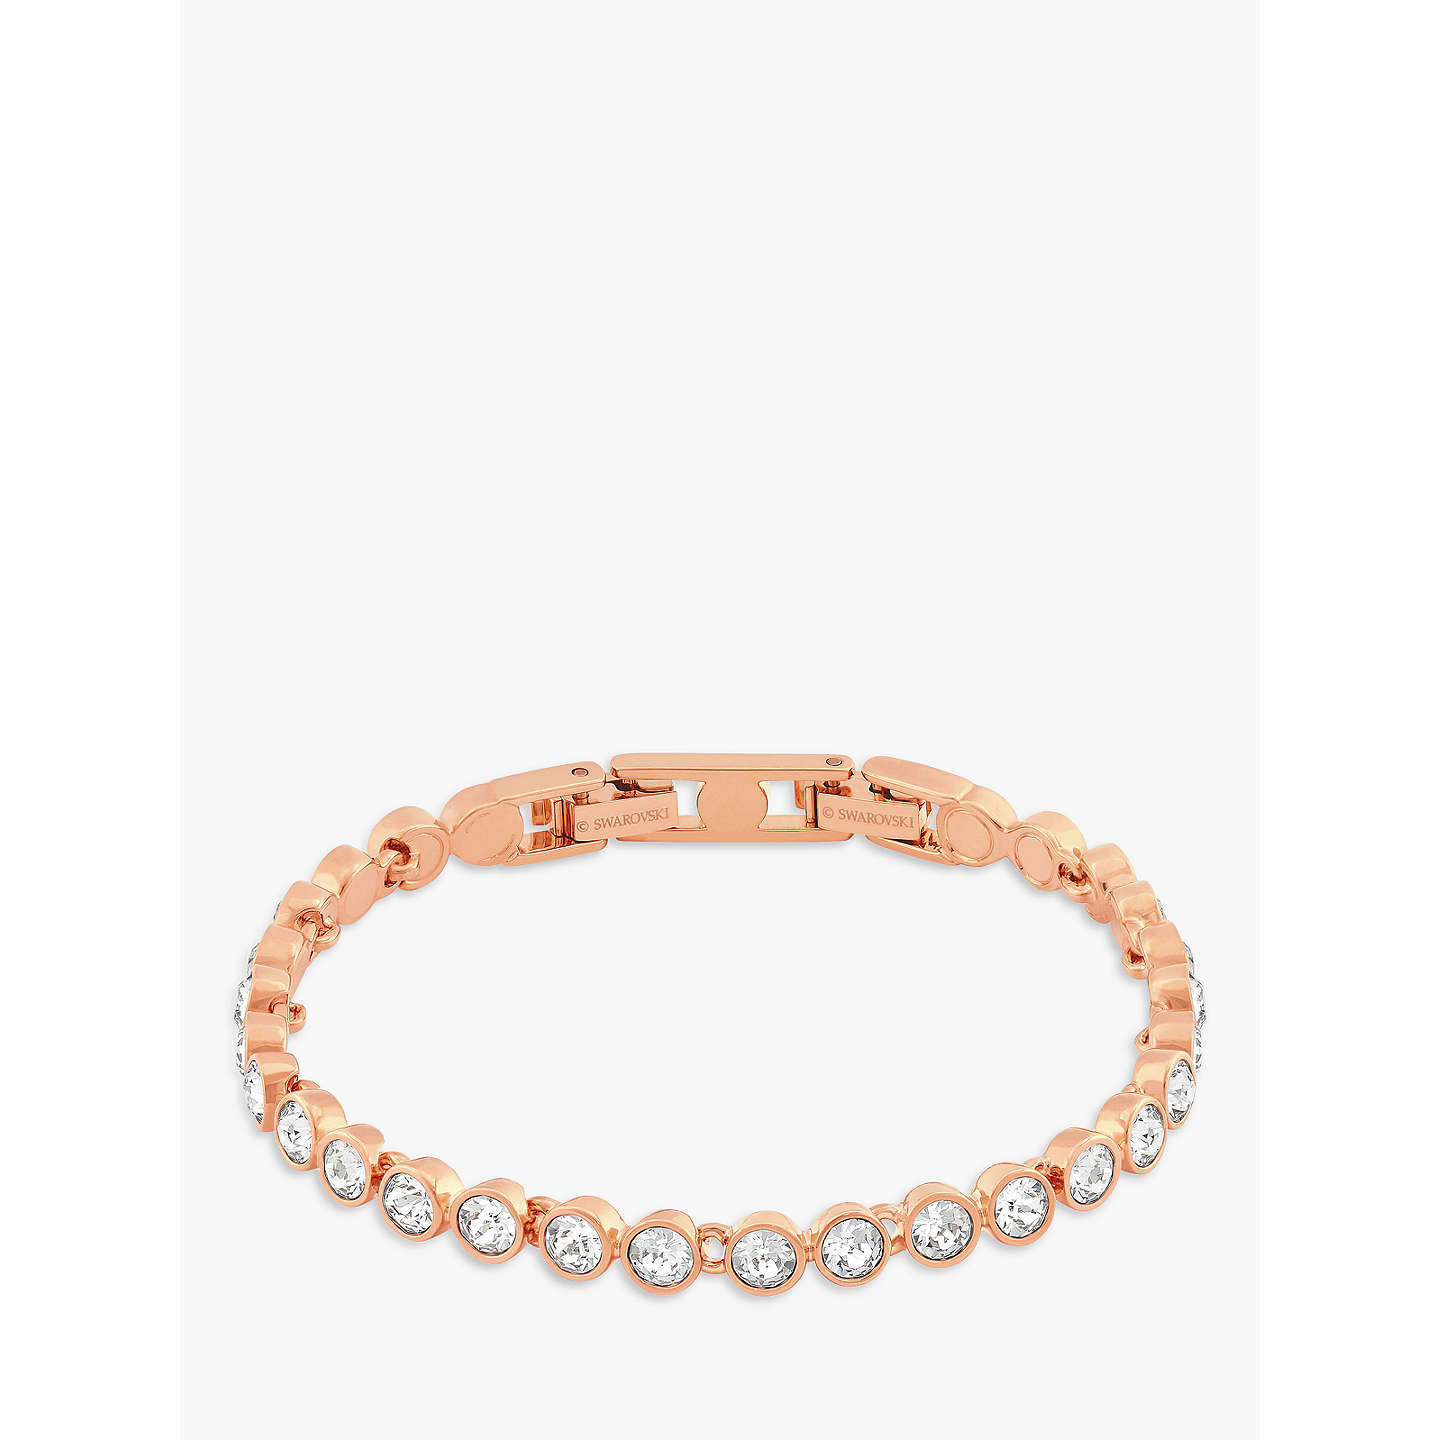 BuySwarovski Crystal Tennis Bracelet, Rose Gold Online At Johnlewis.com ...